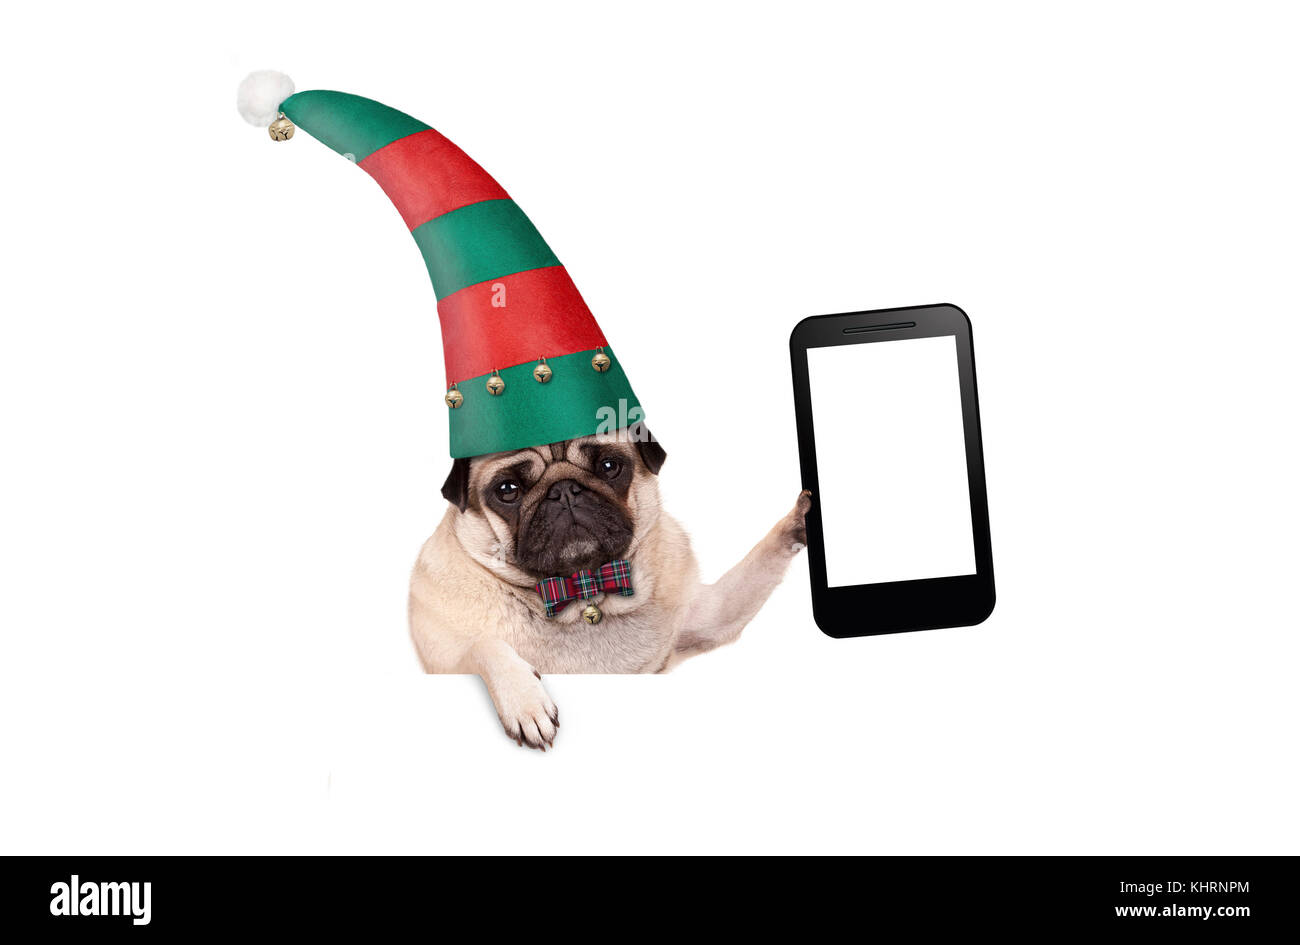 Christmas pug puppy dog with red and green elf hat holding up blank tablet or mobile phone, hanging on white banner, - Stock Image